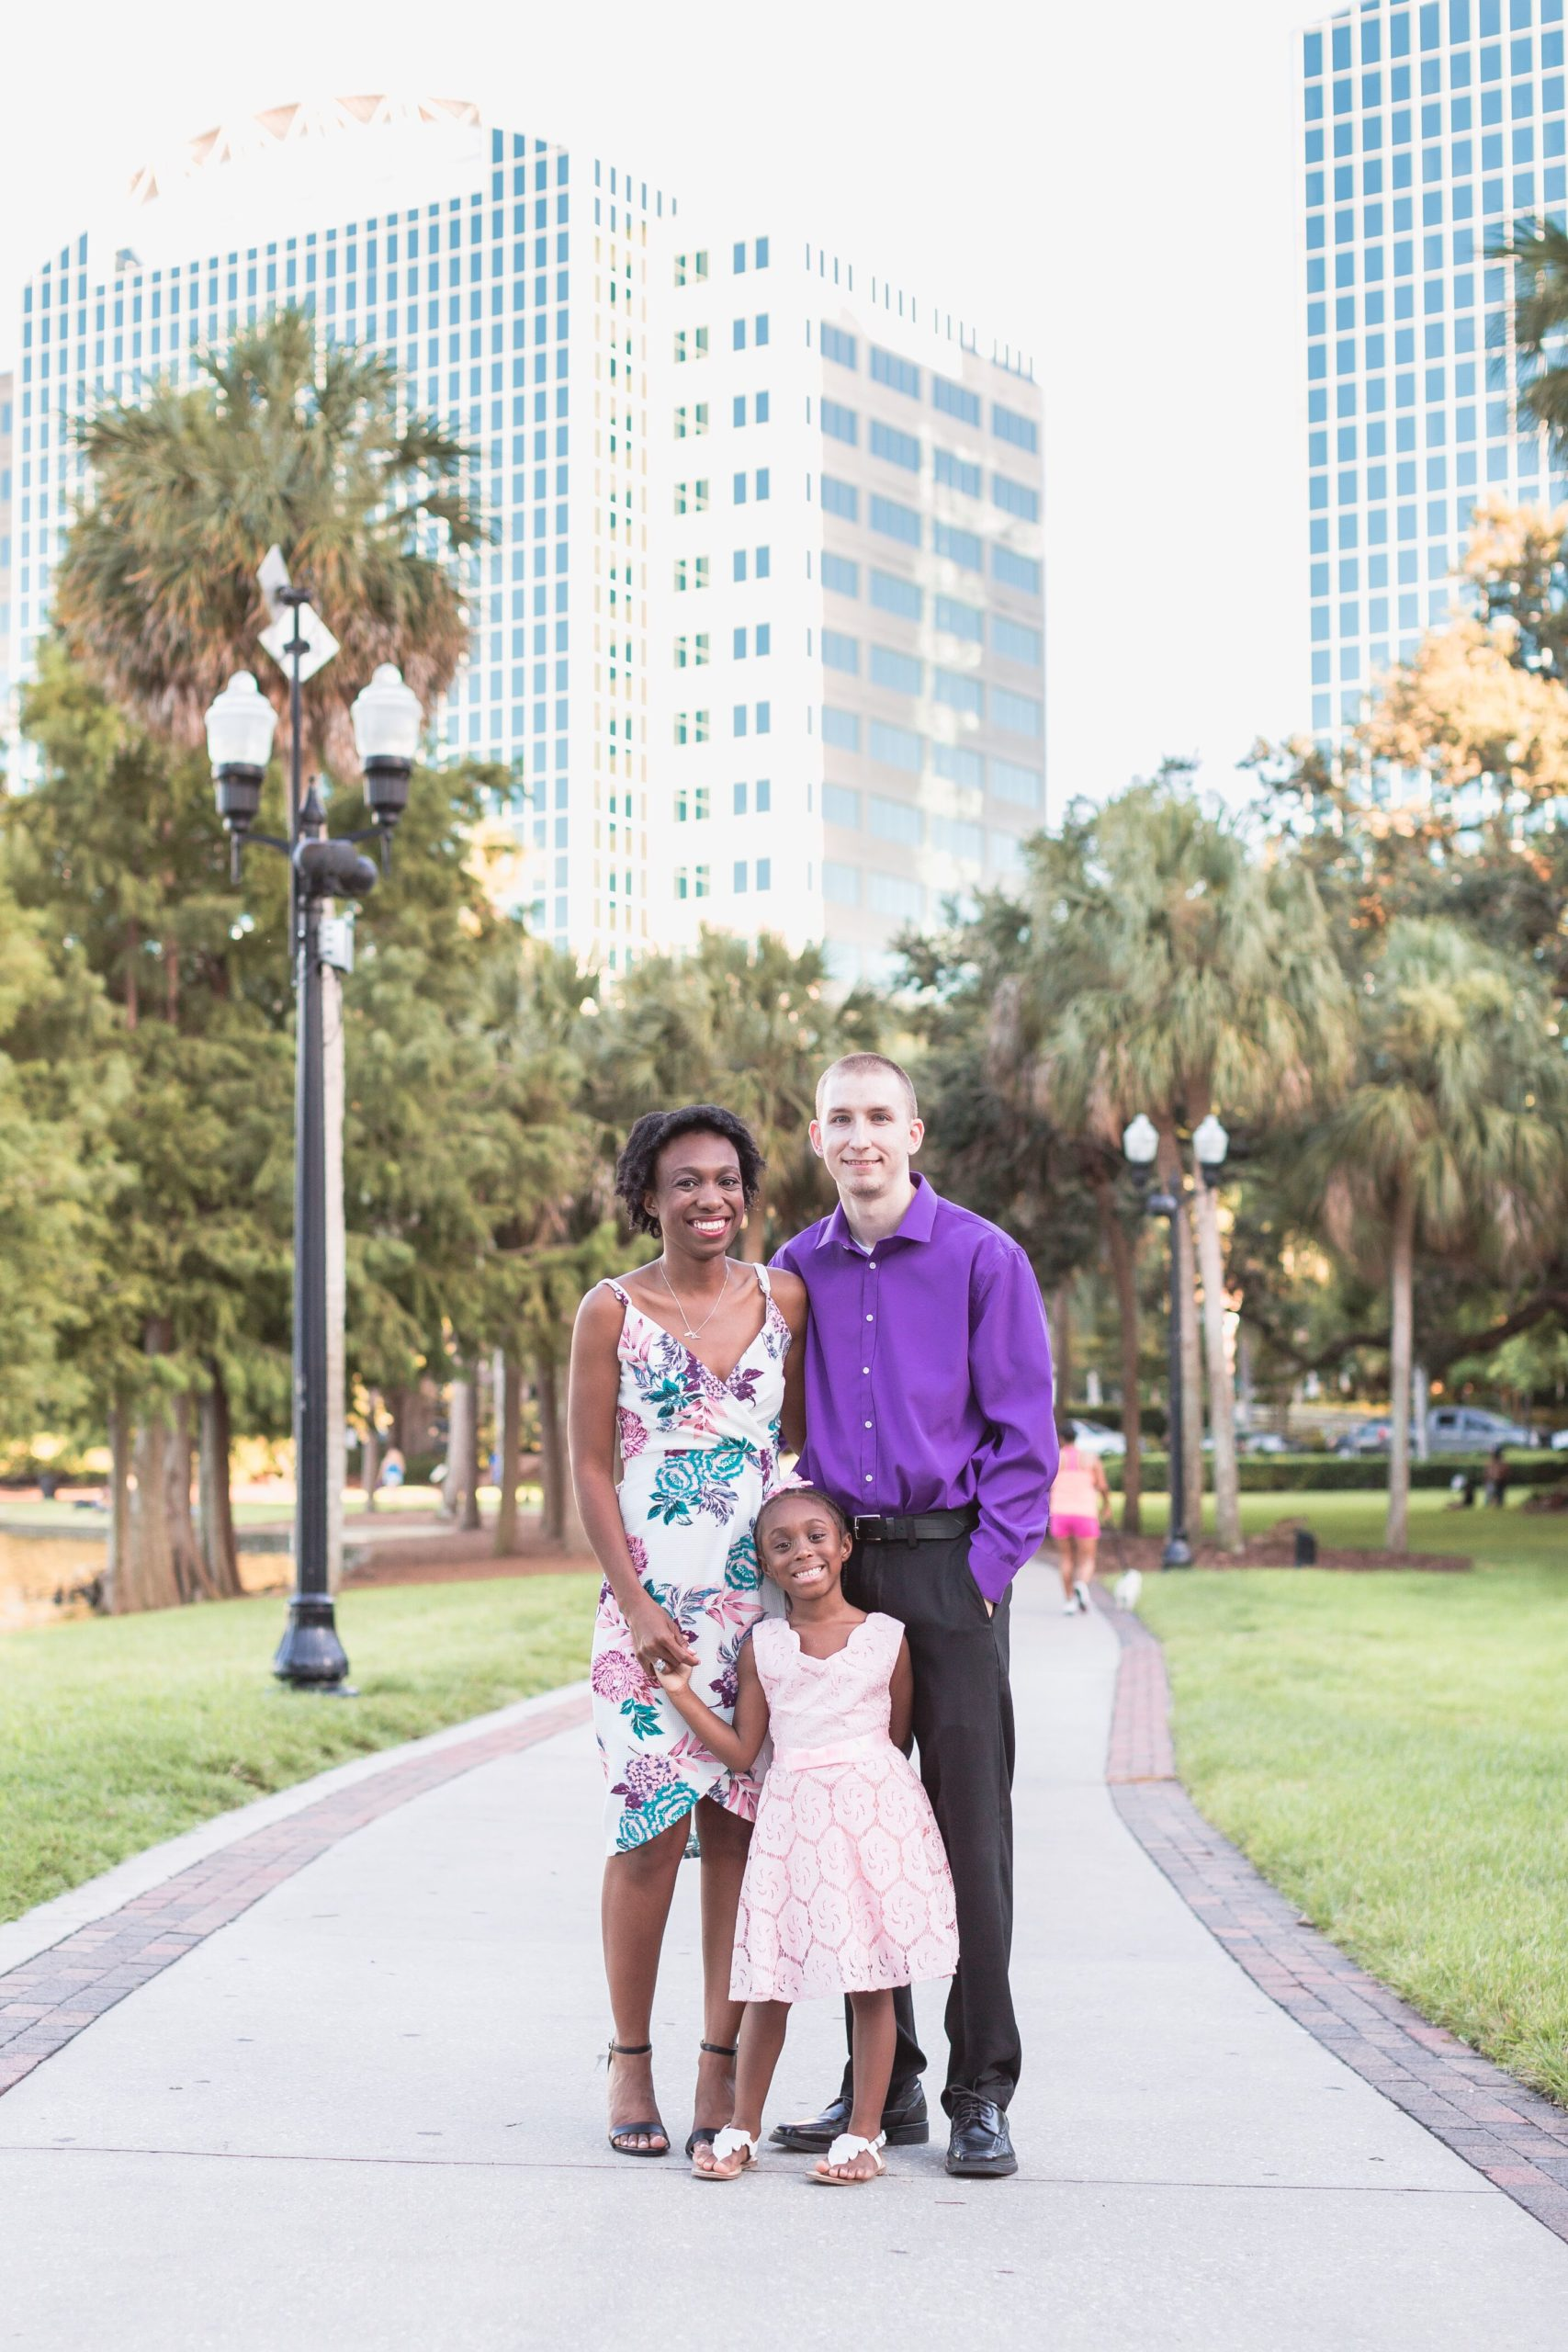 Man in purple shirt, woman in floral dress and child in pink dress taking family photo in a park